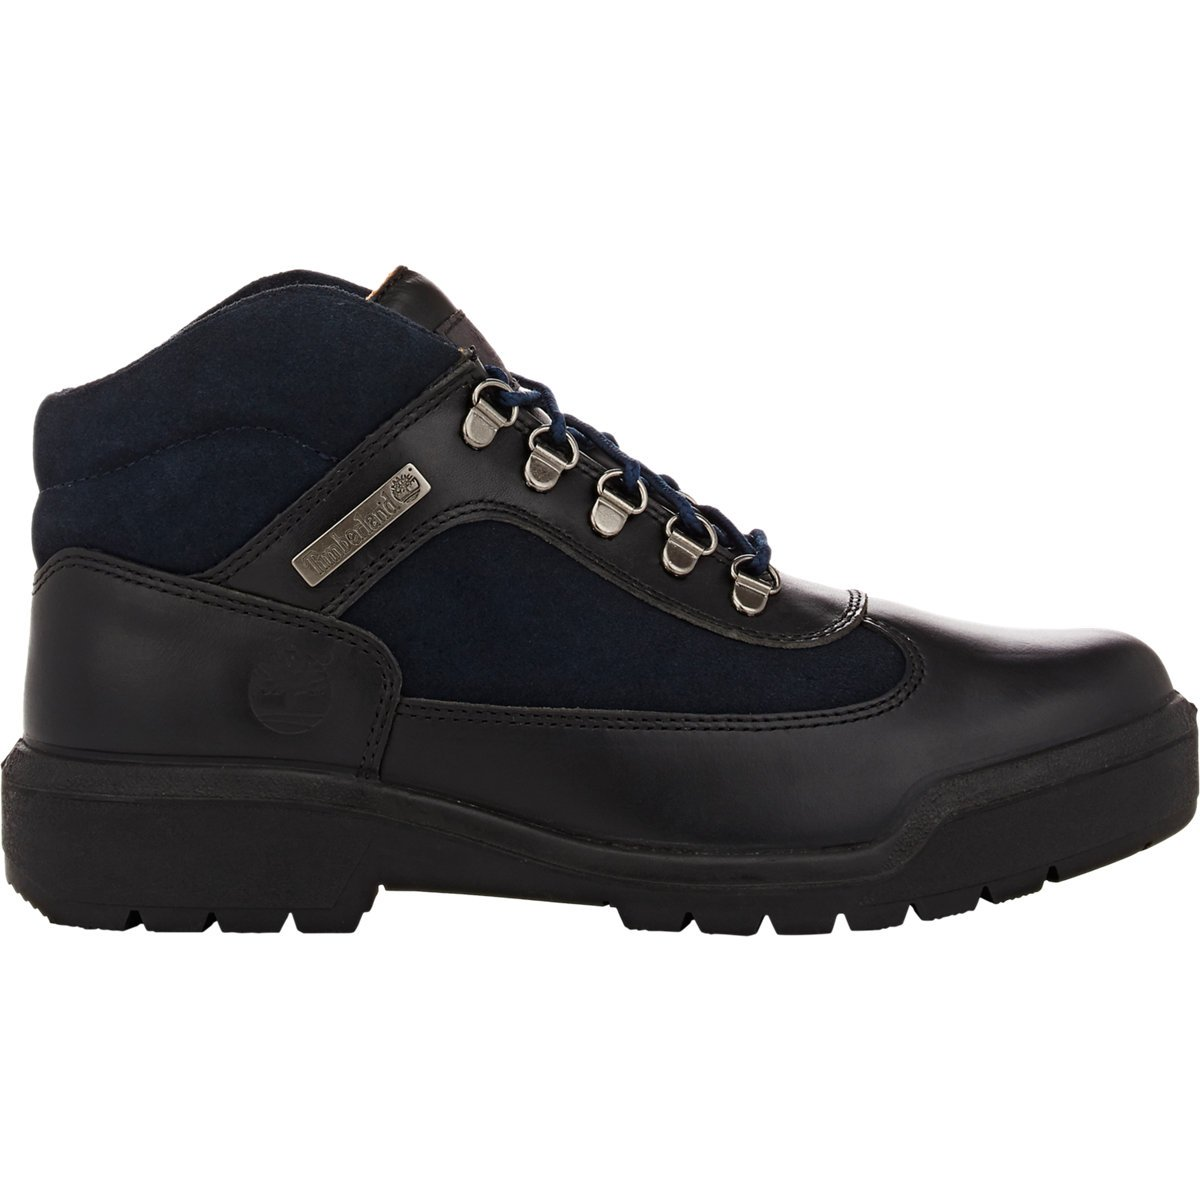 Timberland Men S Field Boots In Black For Men Lyst